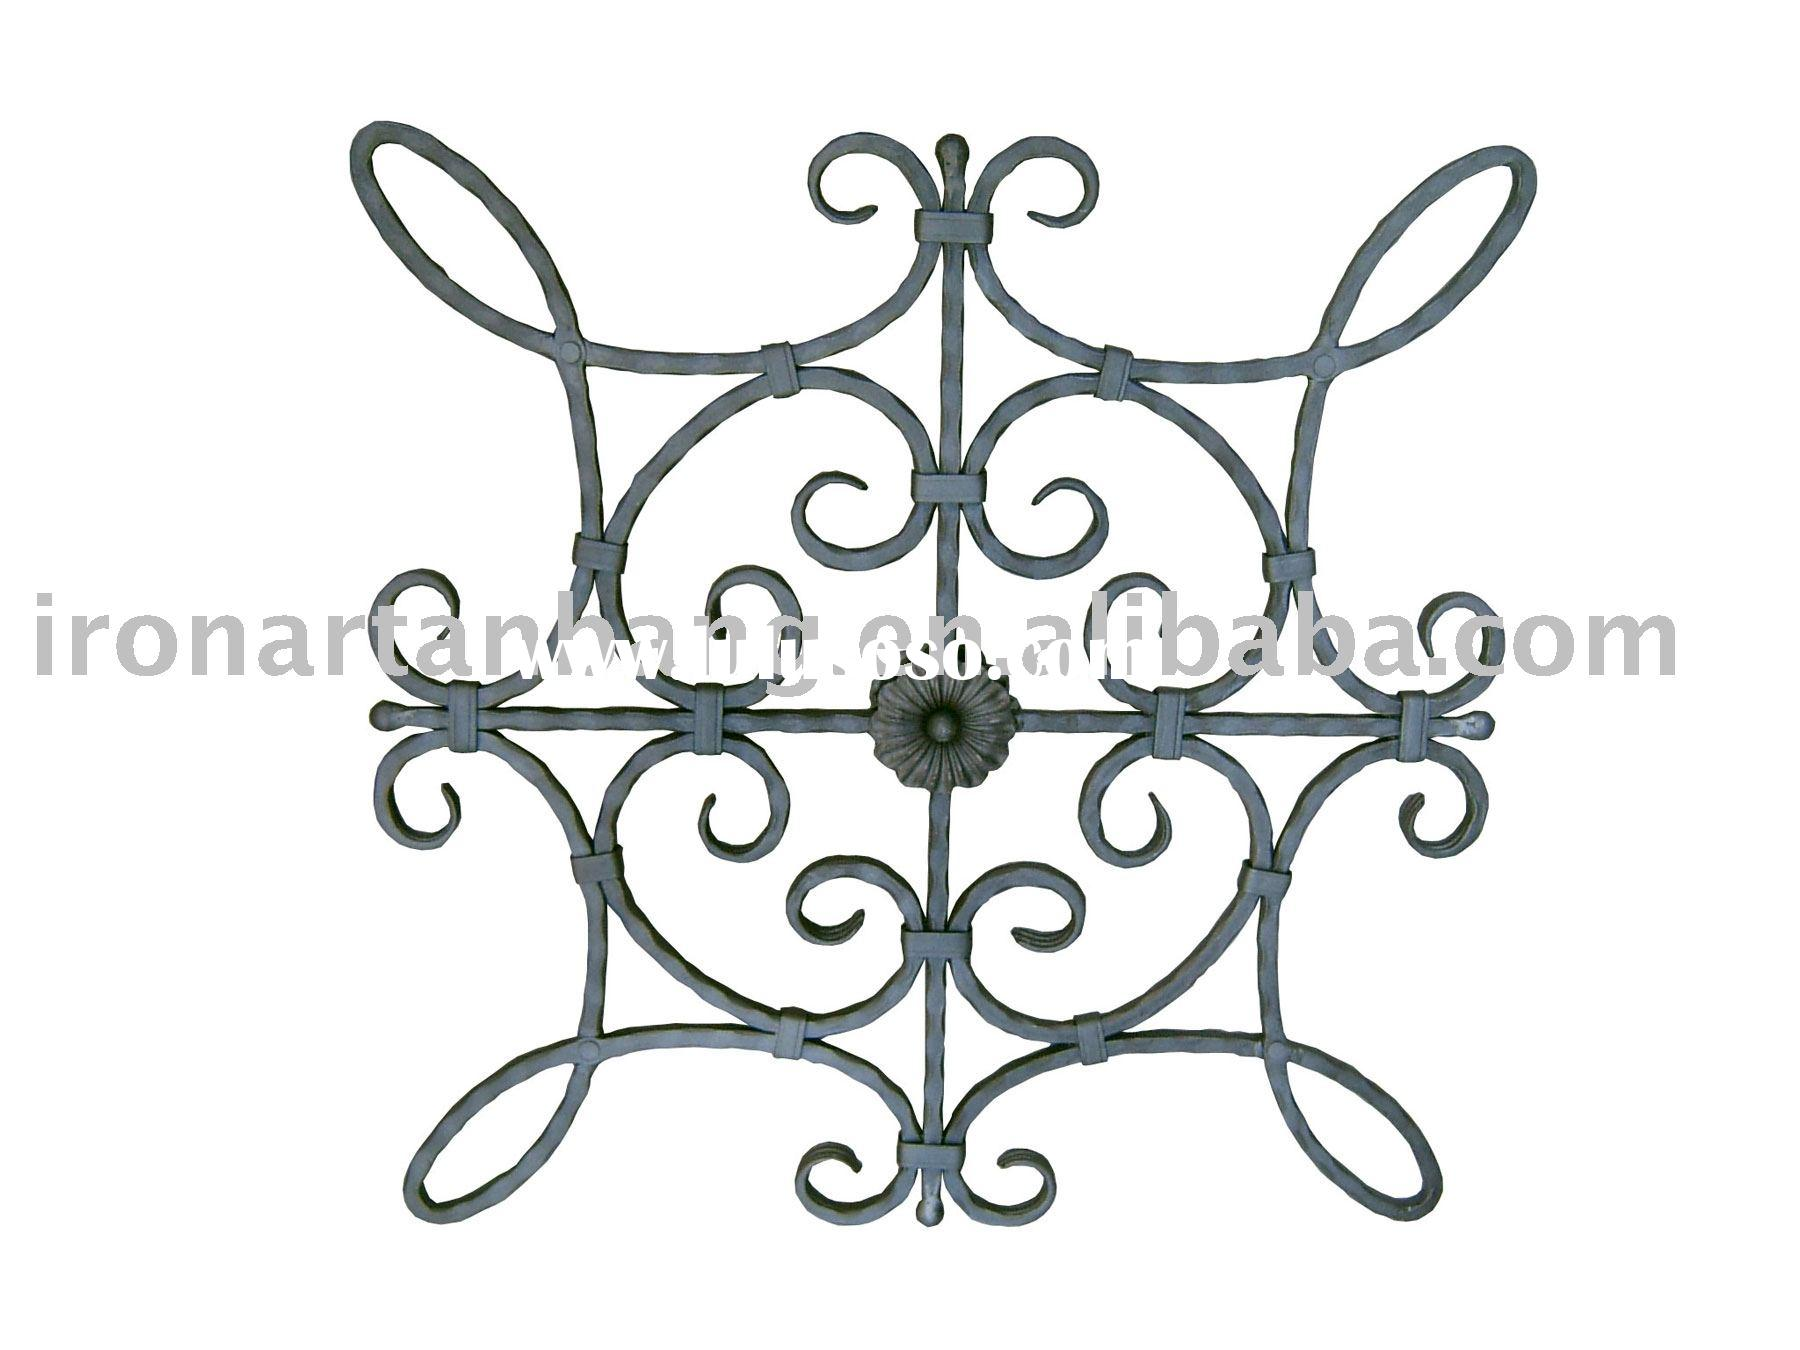 wrought iron parts,forged iron component